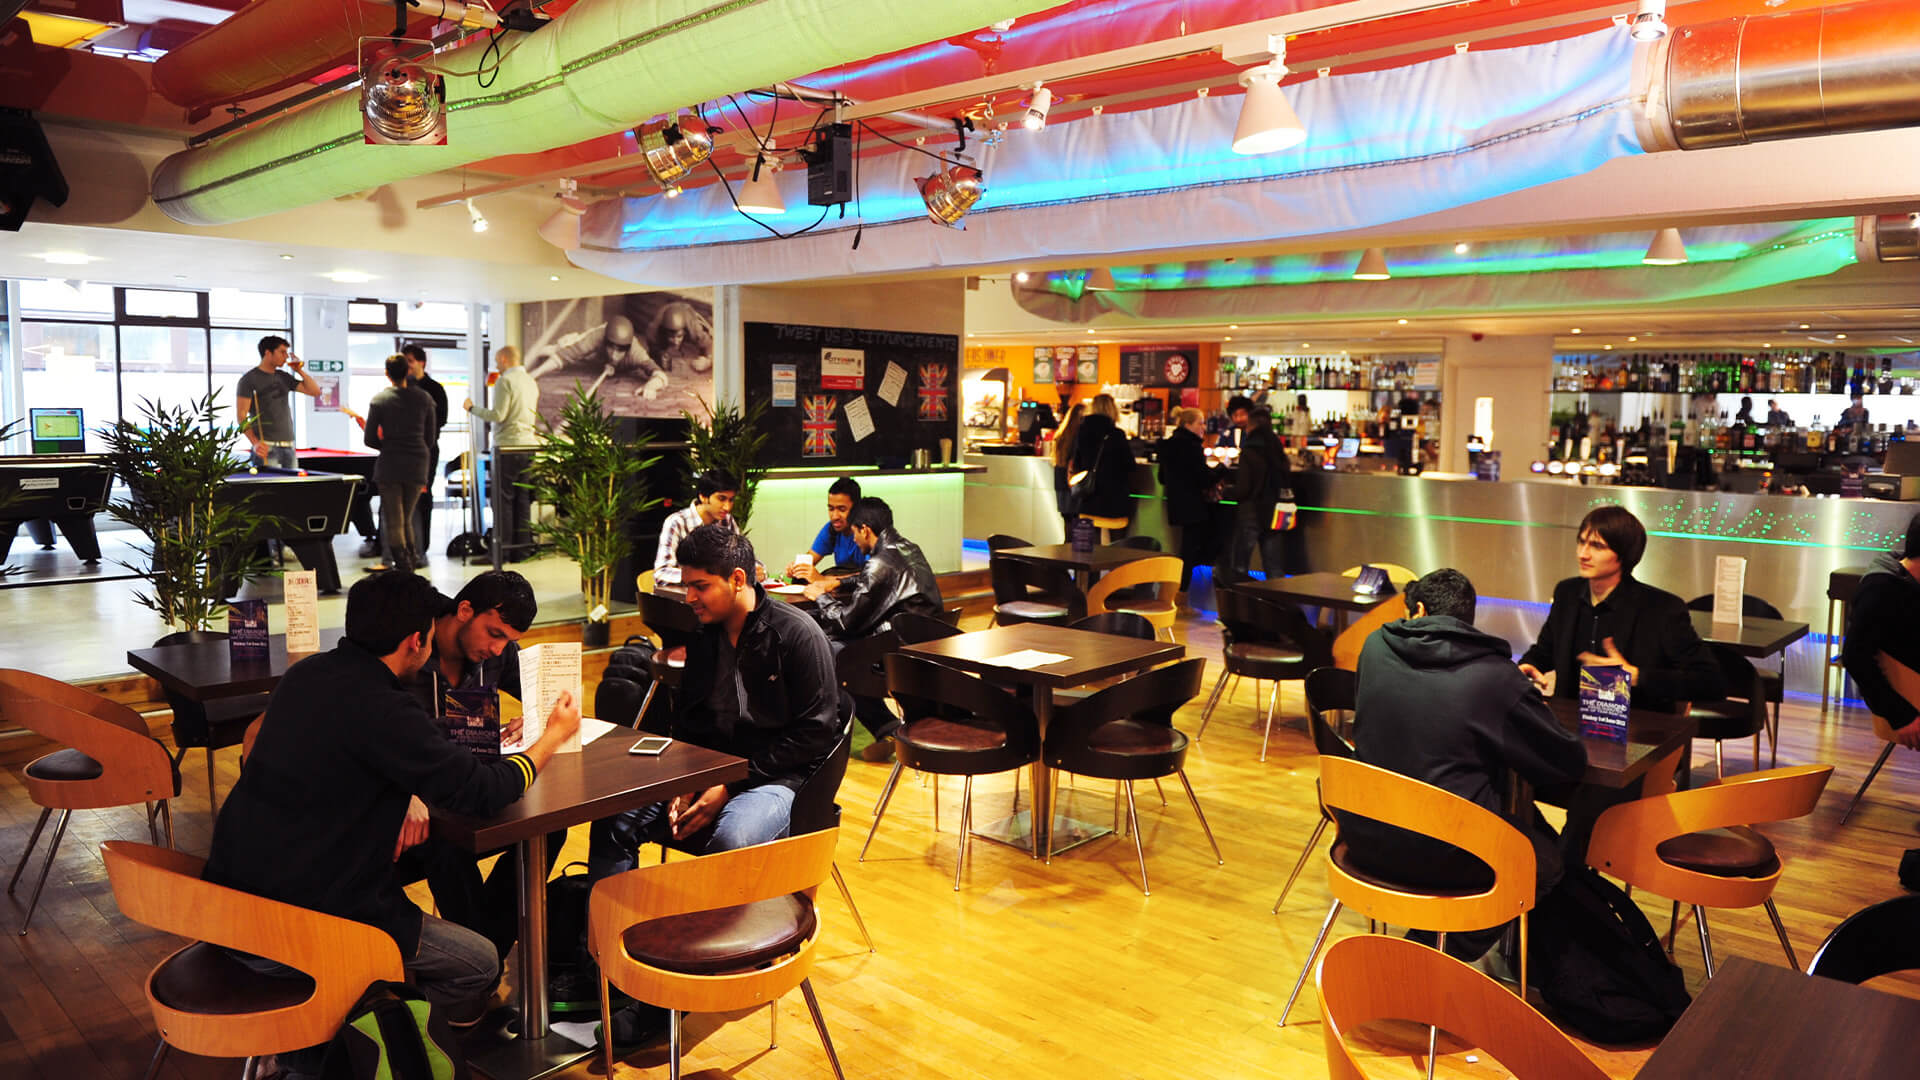 Students gathered in Tait Bar and Cafe at City, University of London